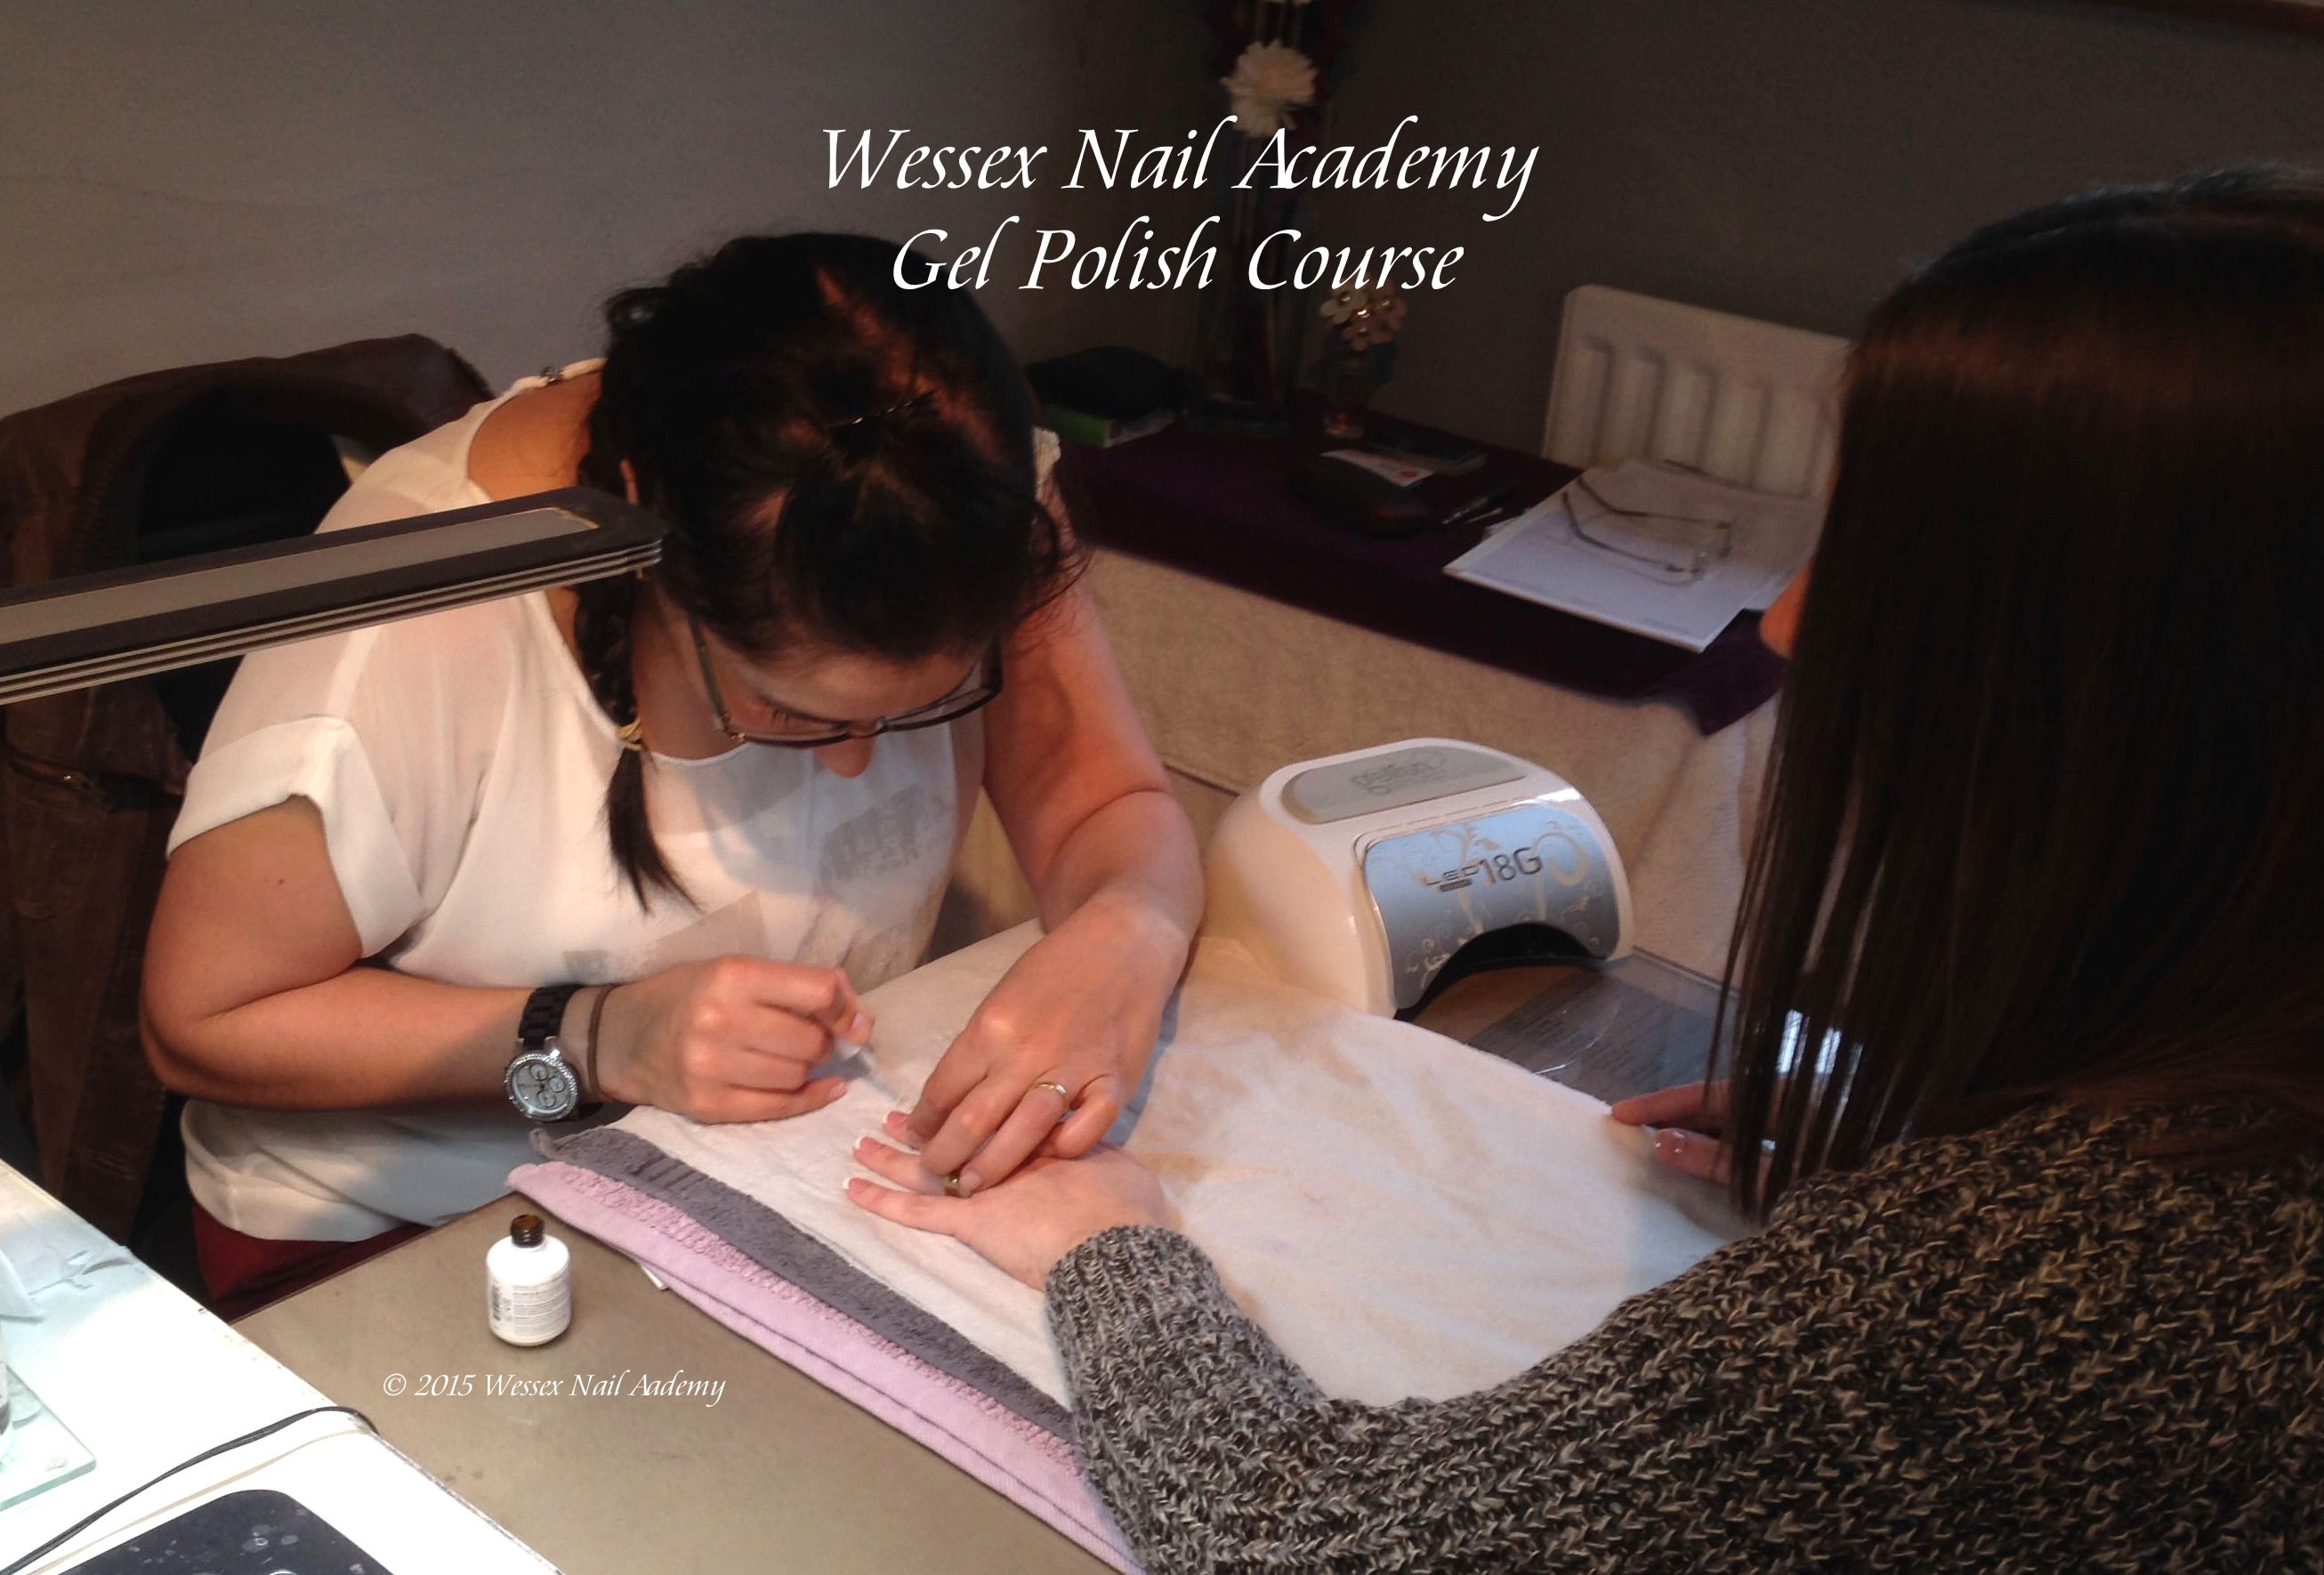 Gel Polish Beginners Manicure and Pedicure Course, Nail extension training, nail training course, Wessex Nail Academy Okeford Fitzpaine, Dorset